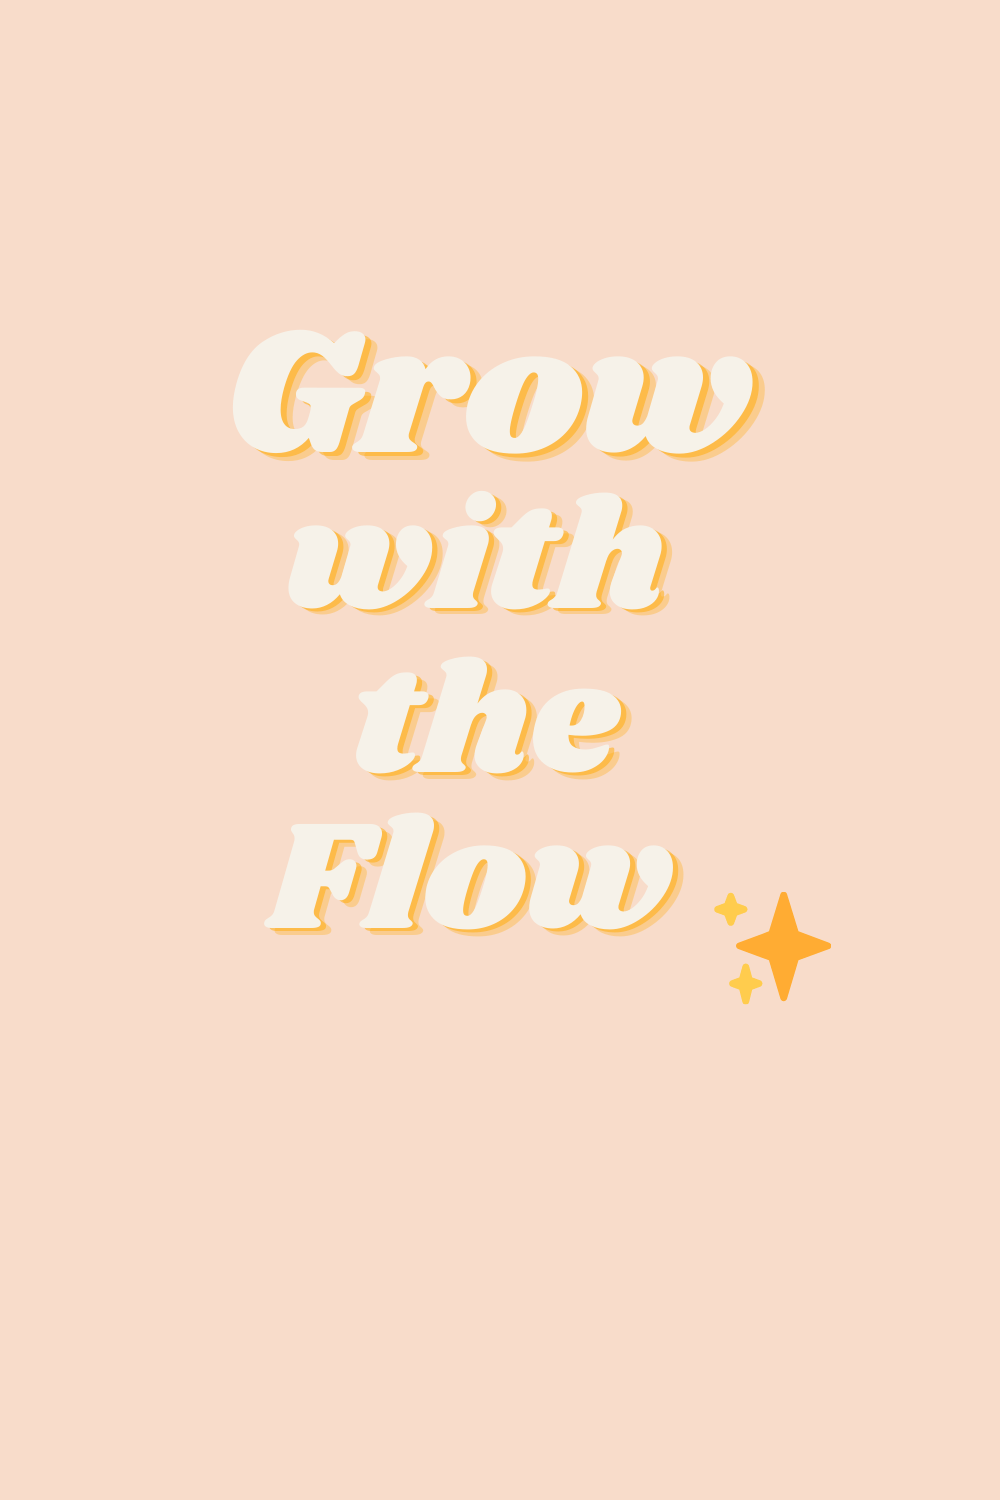 Grow-with-the-Flow-Licht-Liebe-Loslassen